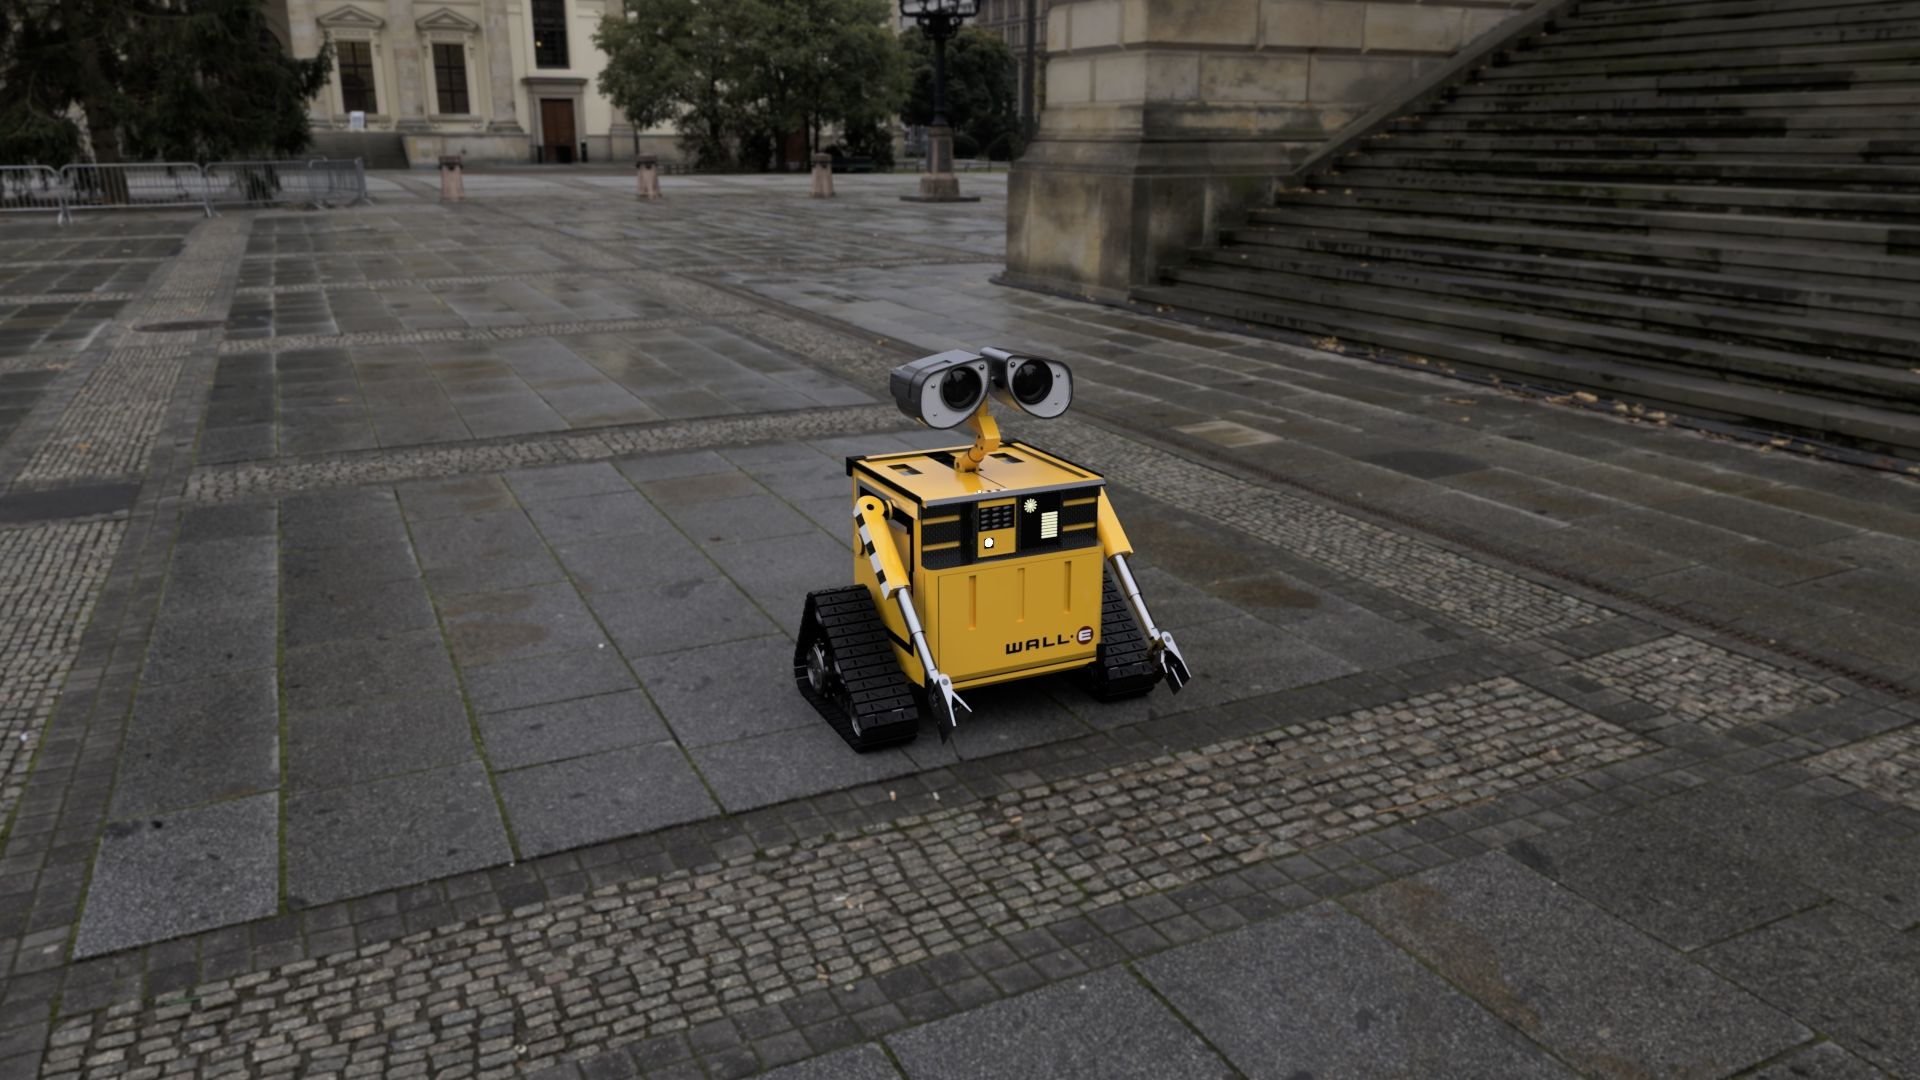 Wall-e-v1-2019-mar-24-03-13-16am-000-customizedview46377121349-jpg-3500-3500